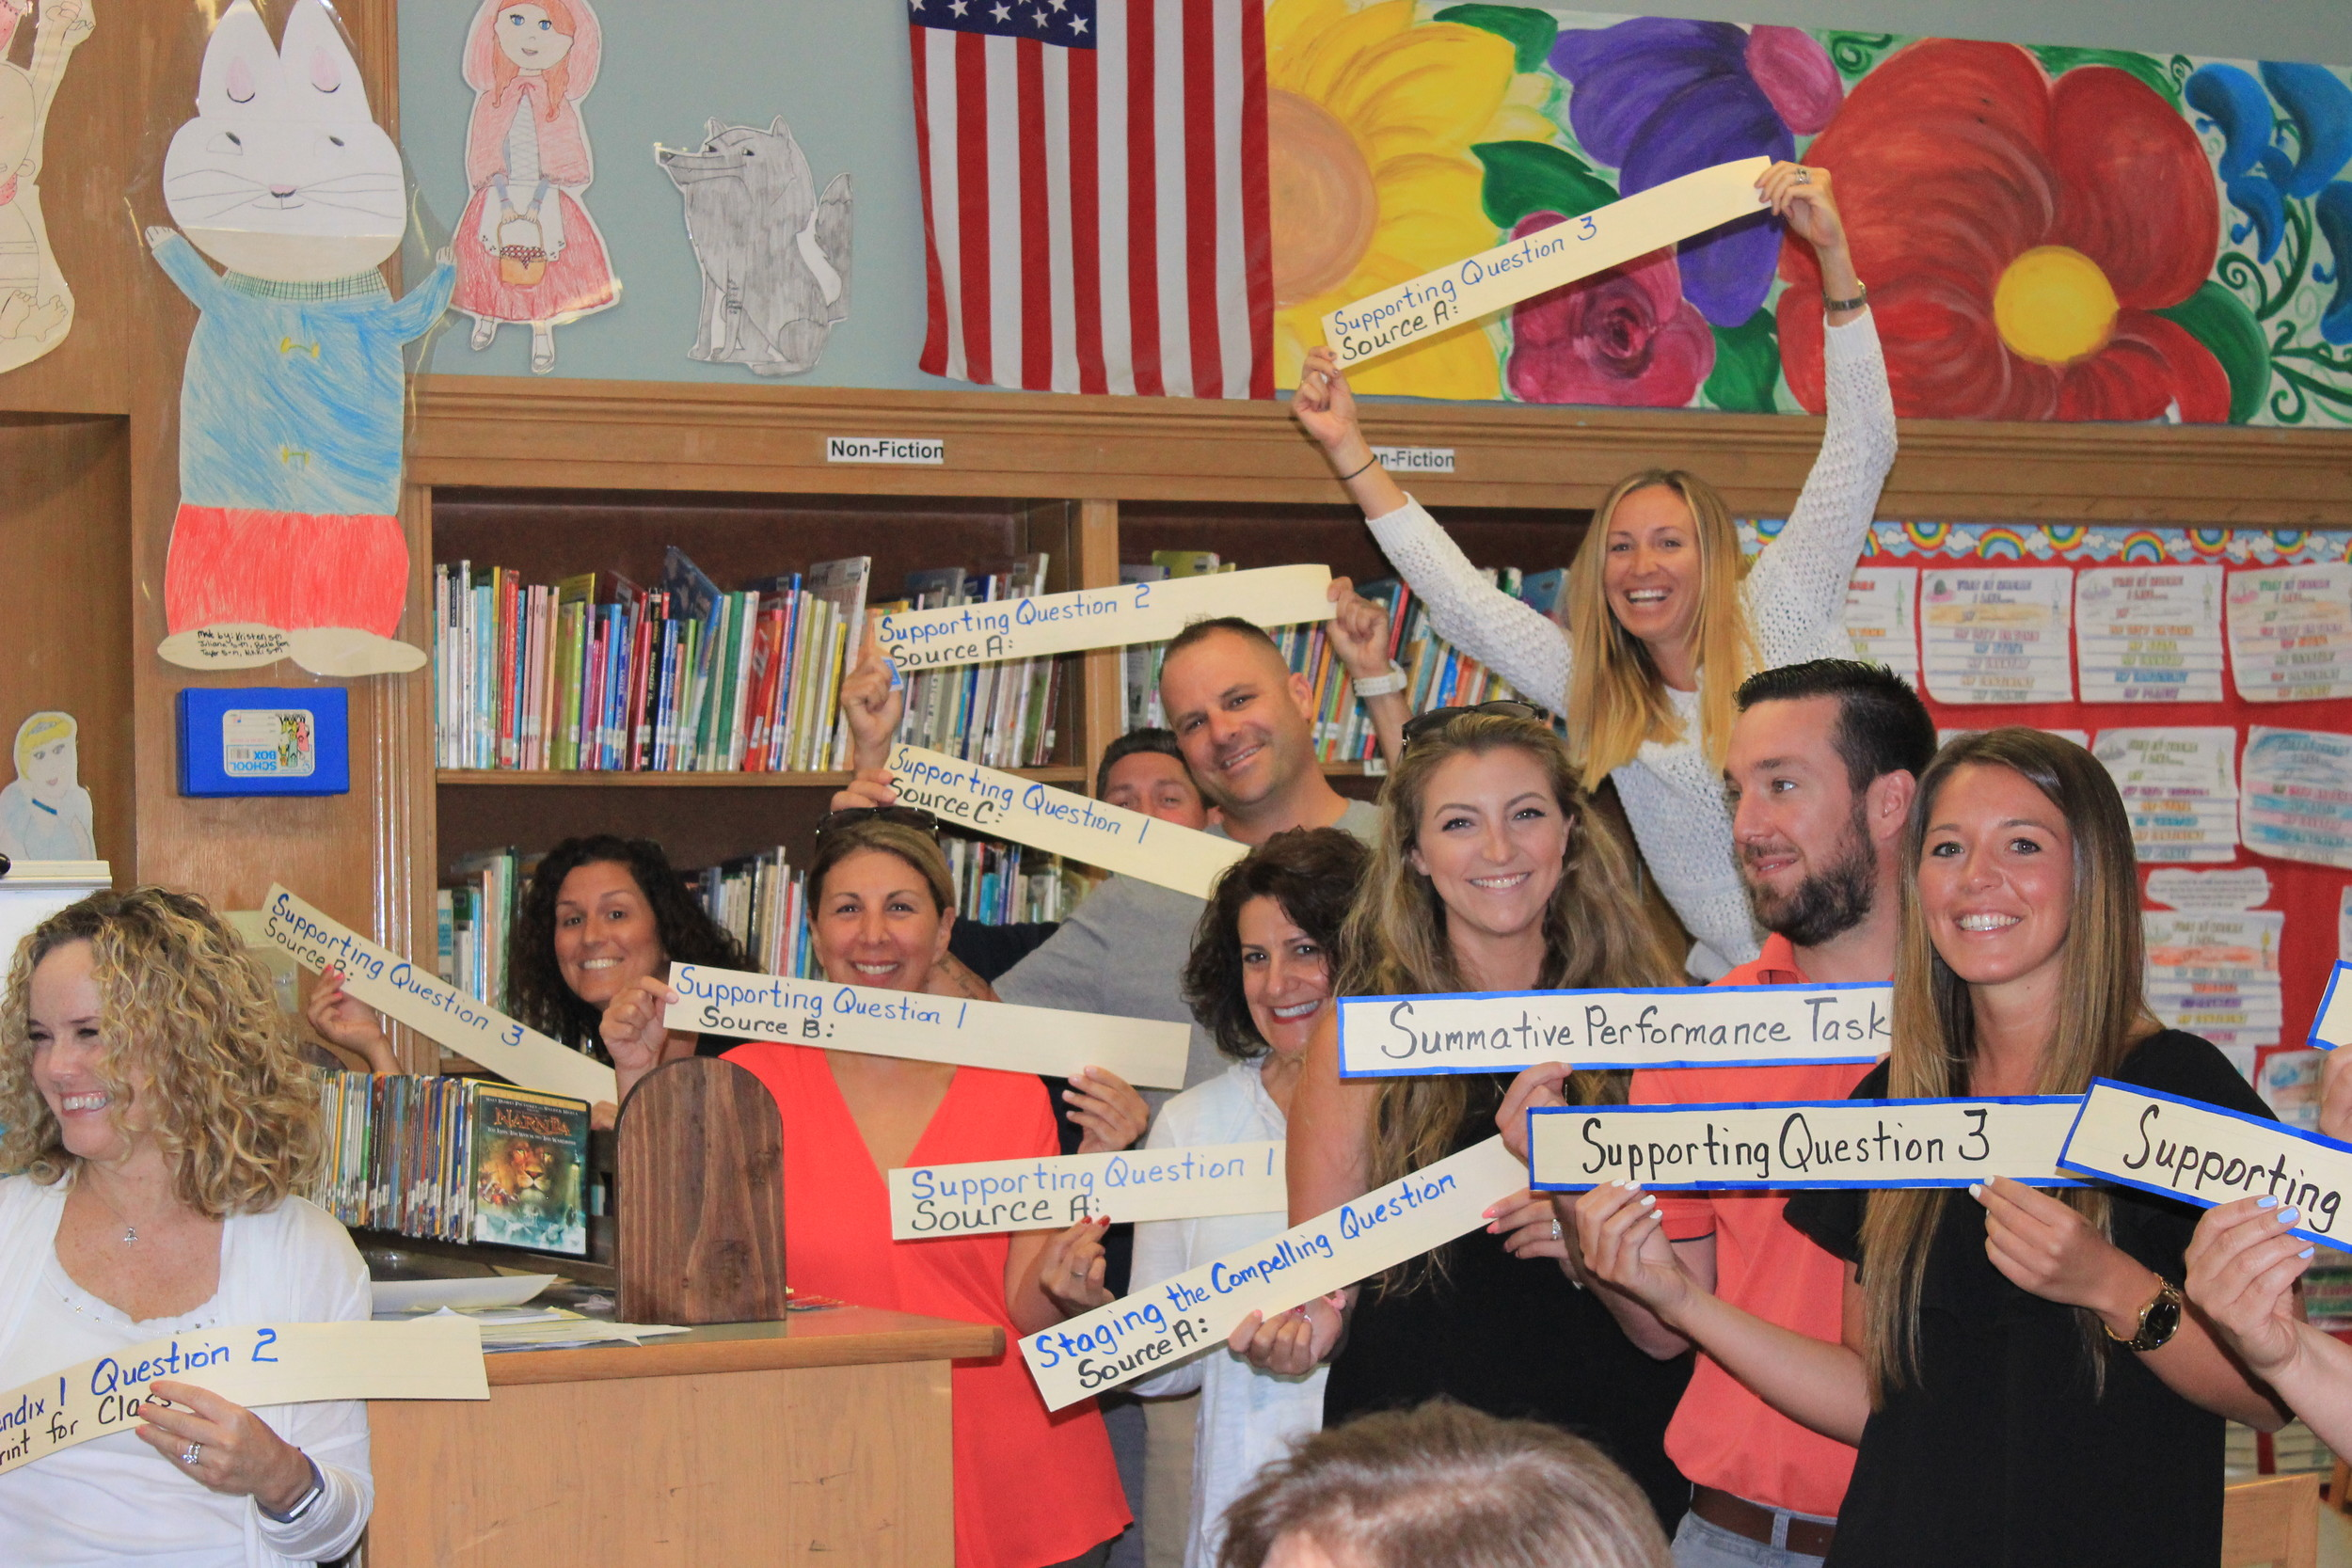 Fifth- and sixth-grade social studies teachers in the Franklin Square Elementary School District took part in a review of their subject standards in a workshop on Aug. 31. In planning lessons, the teachers follow a blueprint in which they have students asking supporting questions and providing detailed responses, or evidence, as their answers.